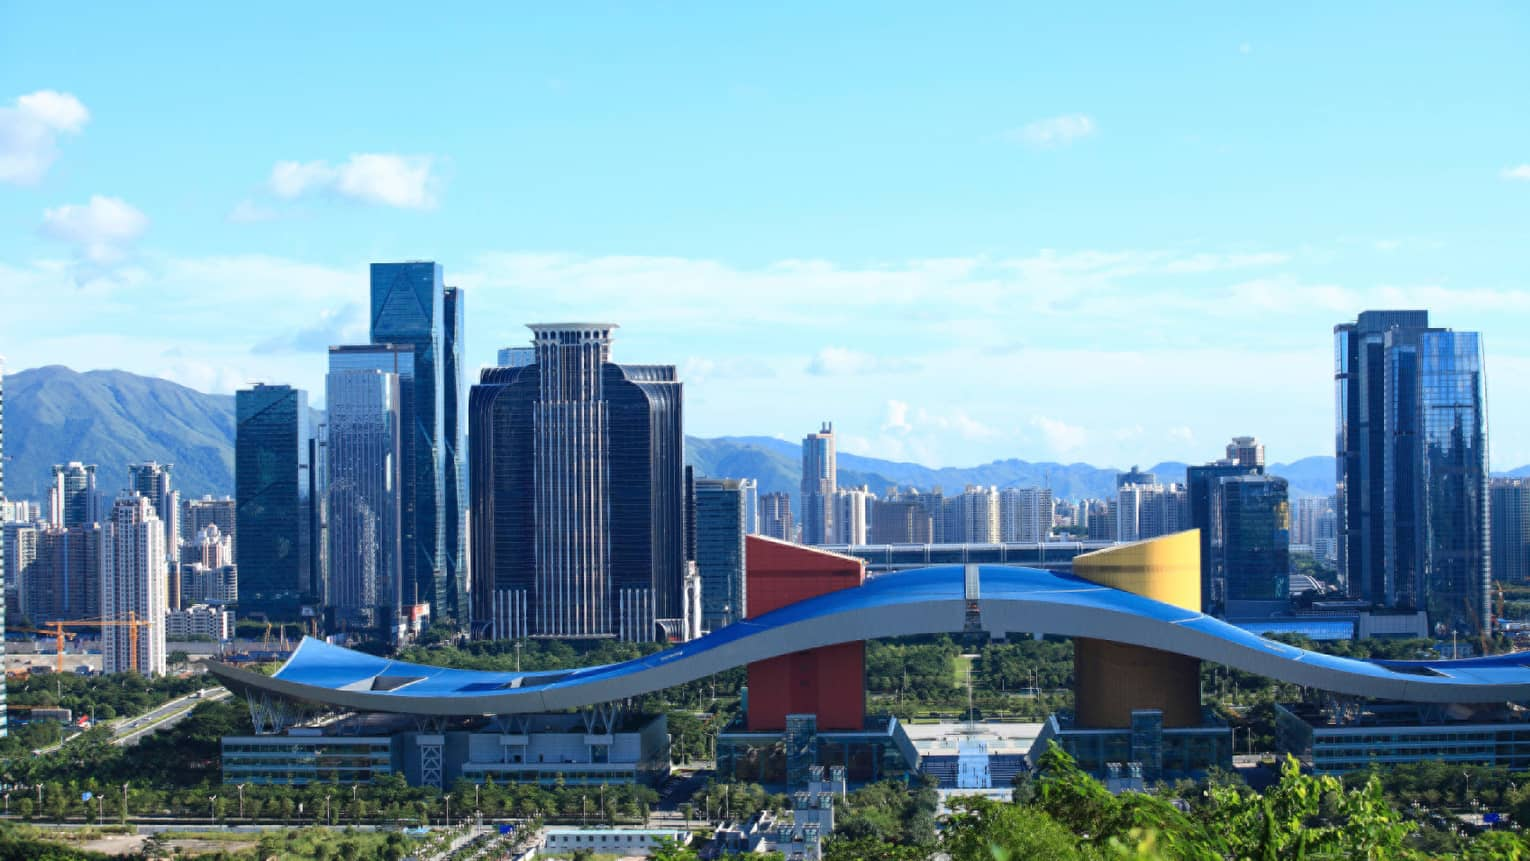 View over Shenzhen curved city hall roof, business district high rise buildings against mountains